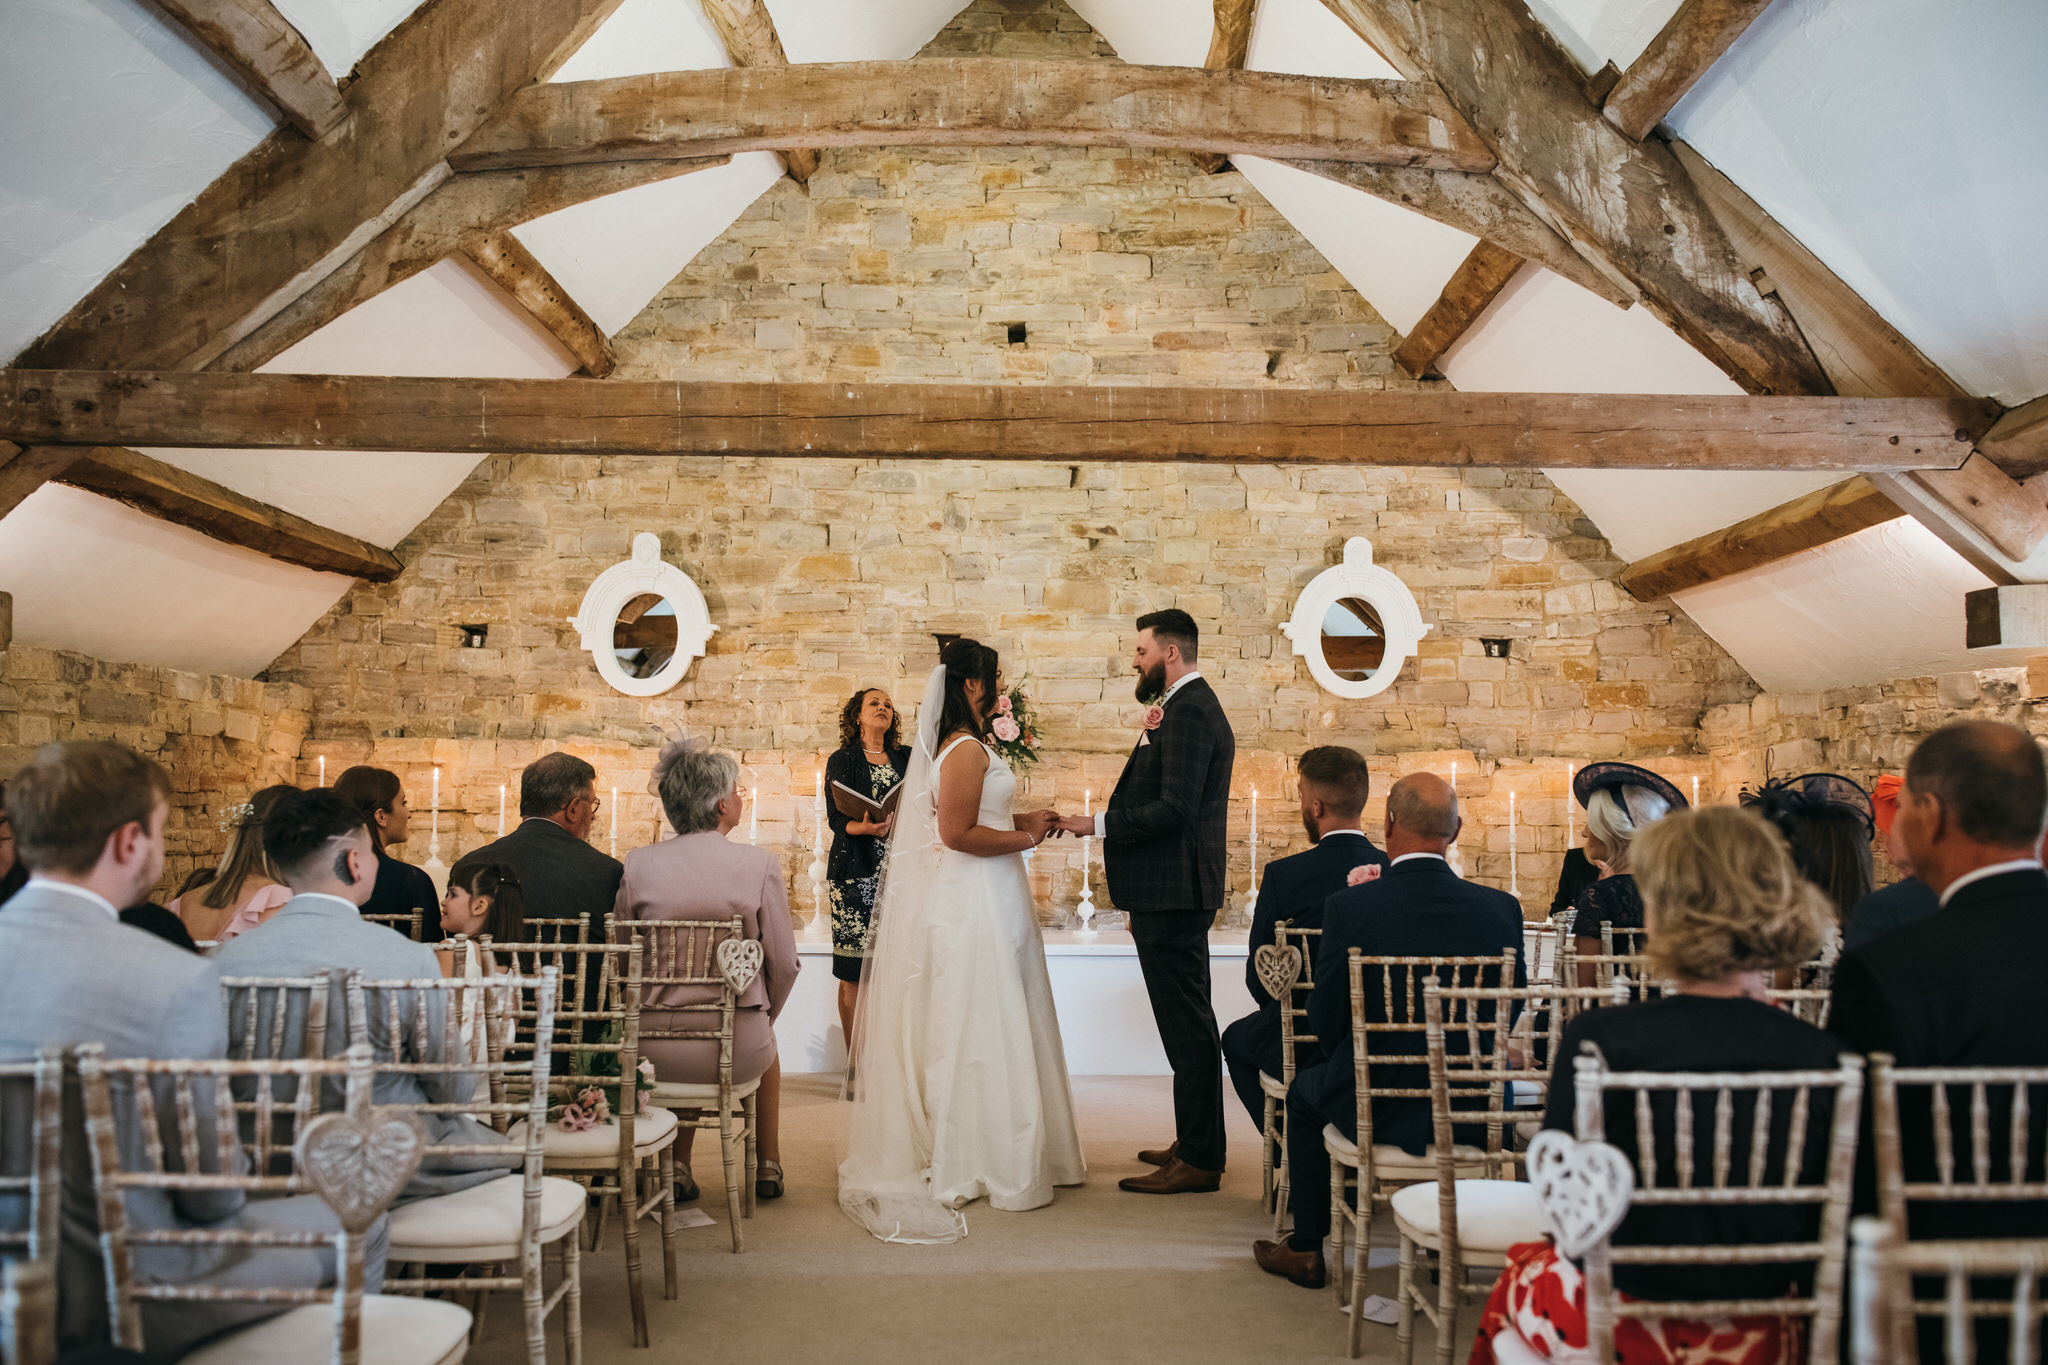 Ceremony at Almonry barn